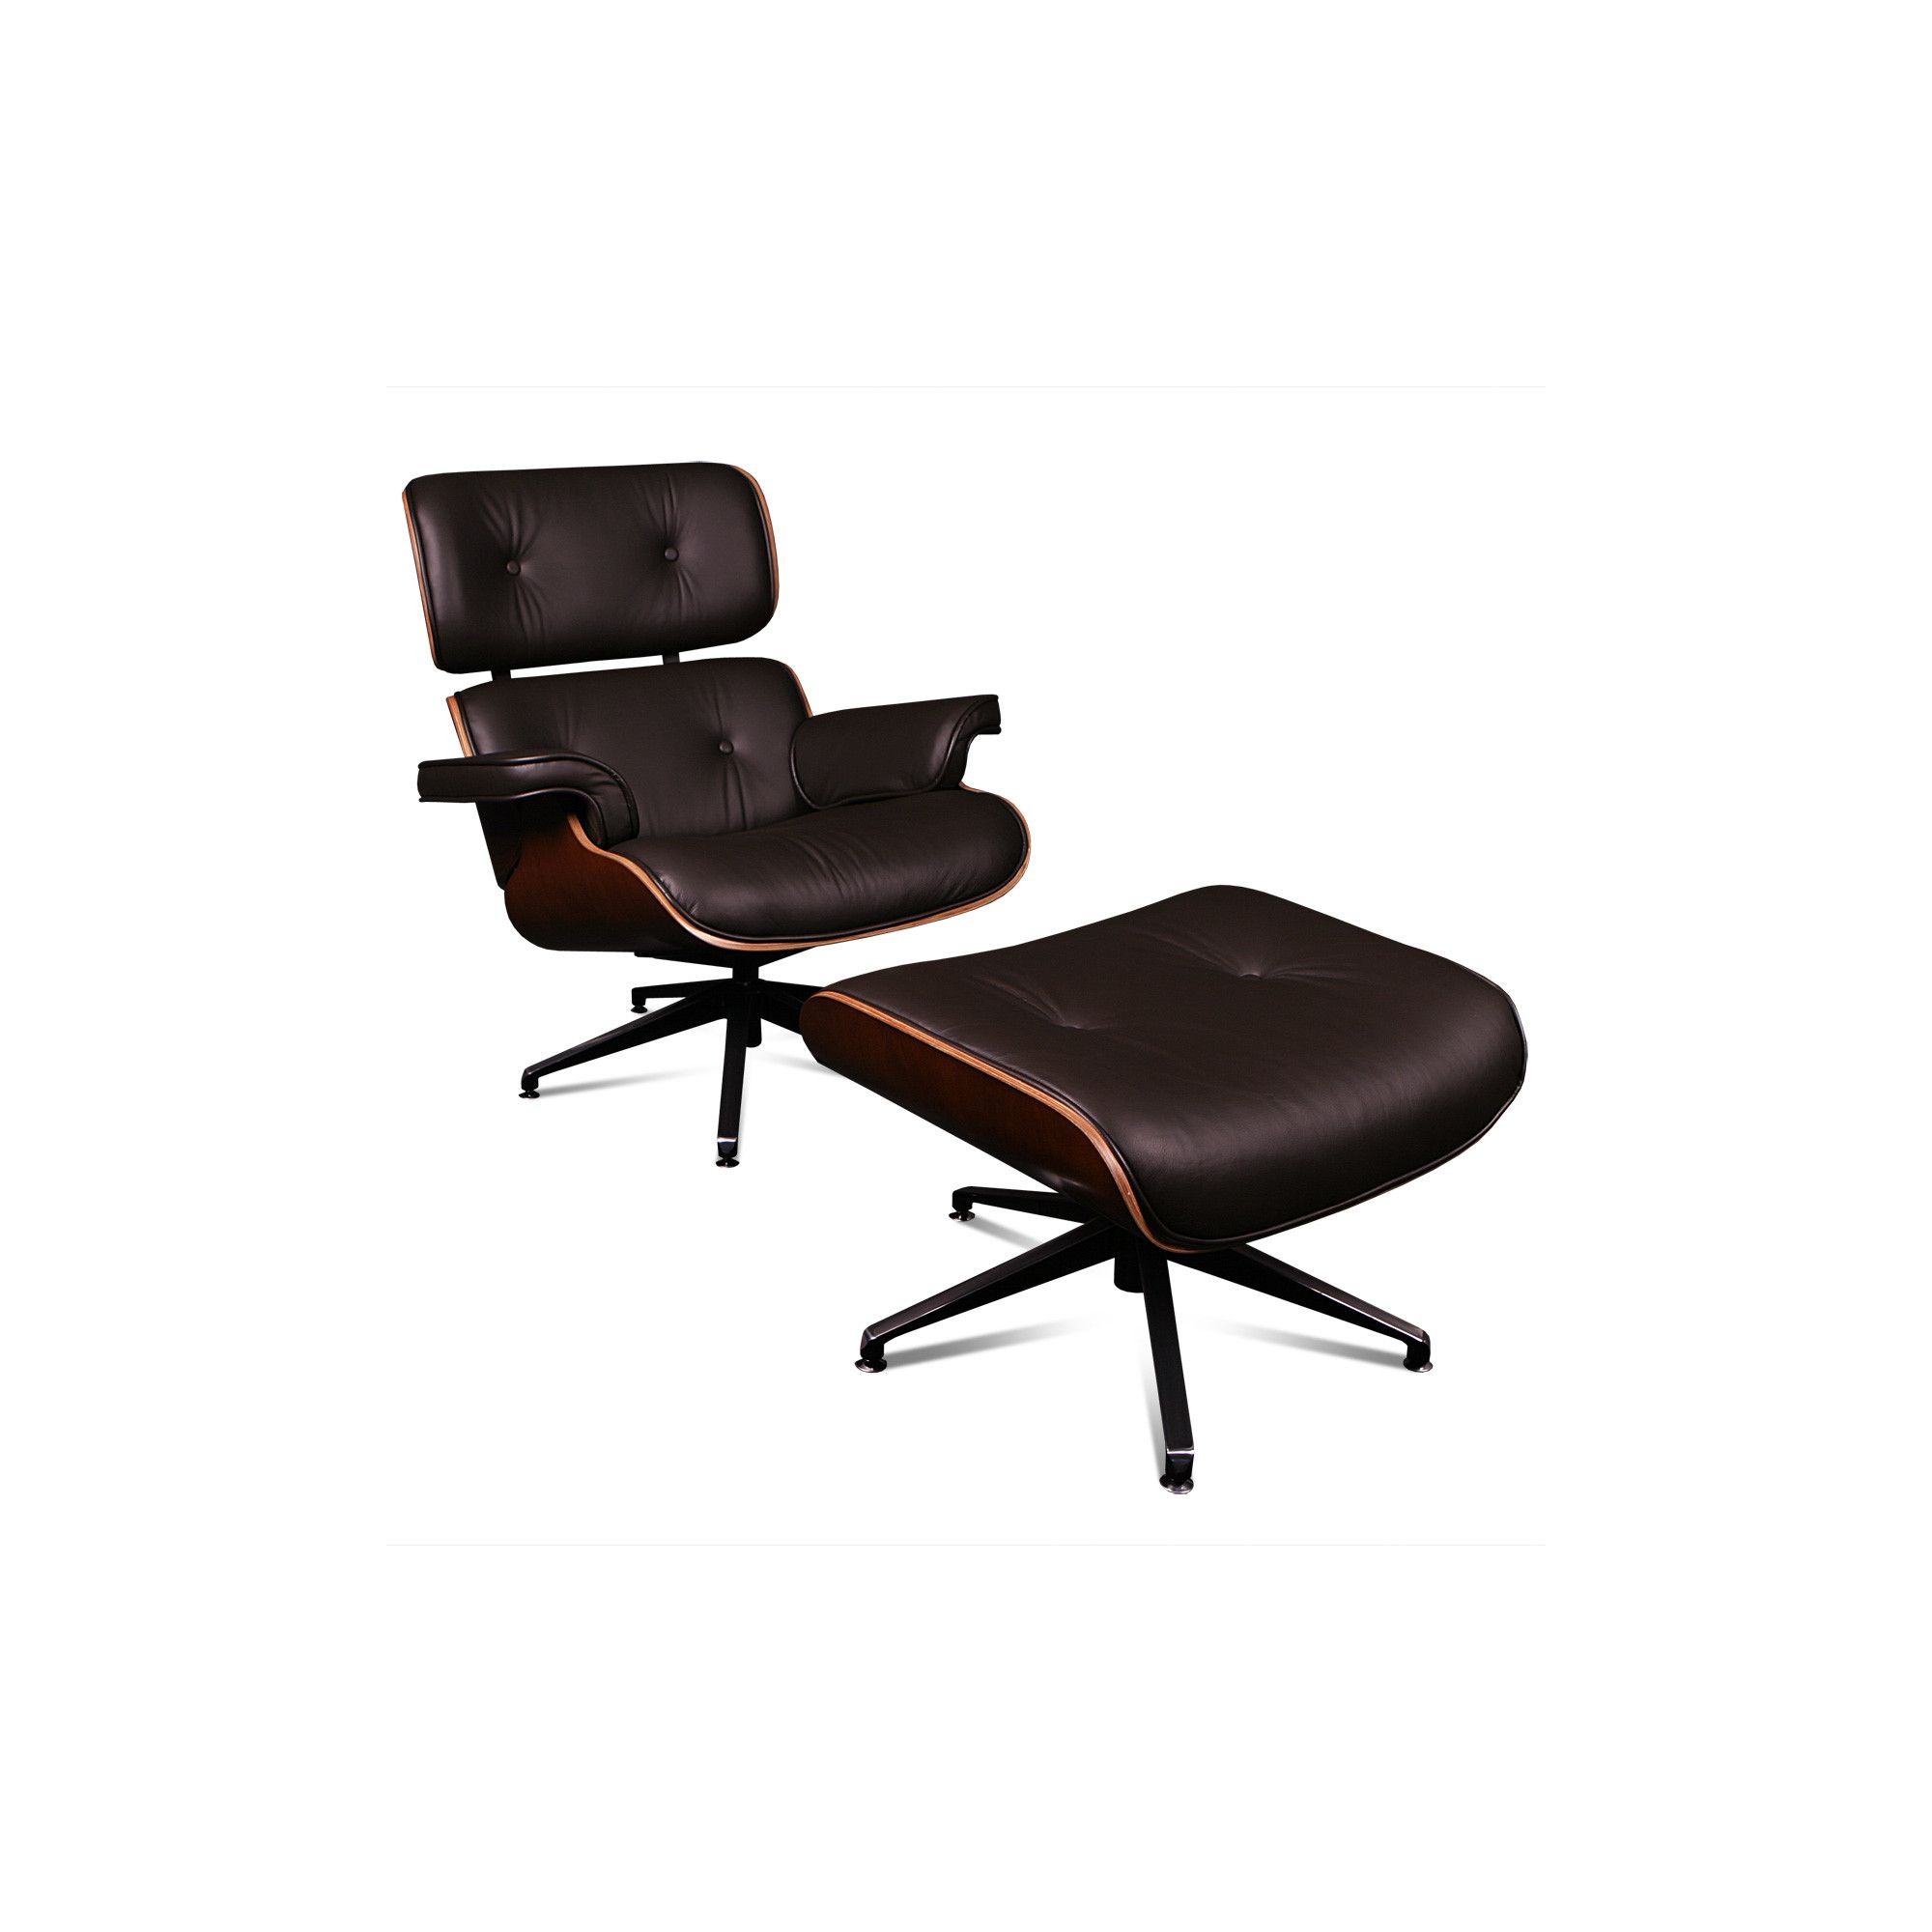 ProMech Racing Classic Leather Lounge Chair and Ottoman - Brown at Tesco Direct